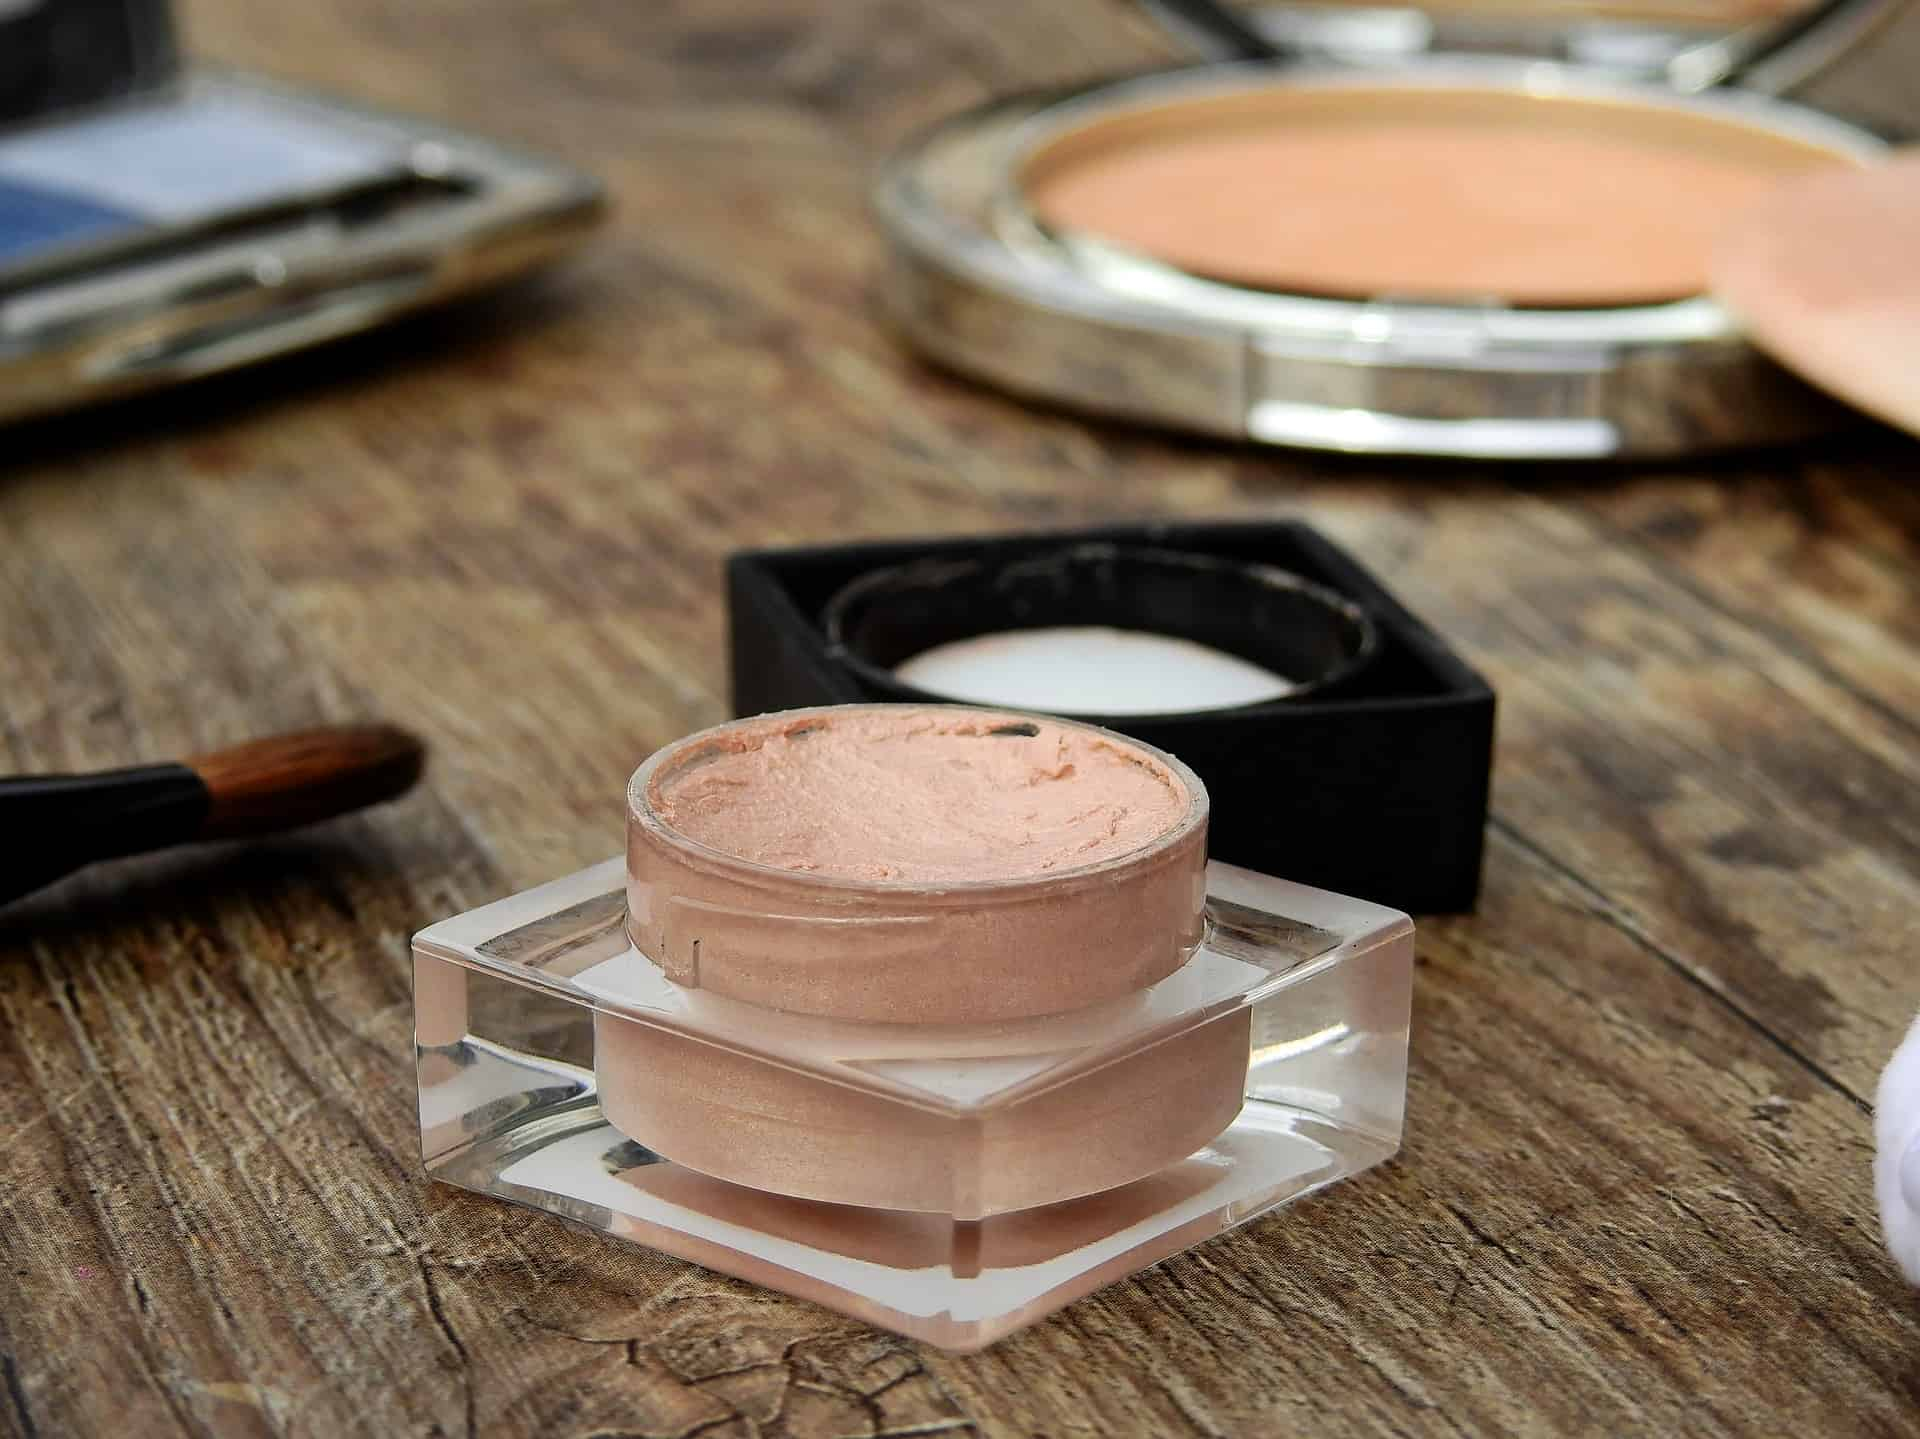 Three Little Tips for Reducing Plastic in your Makeup